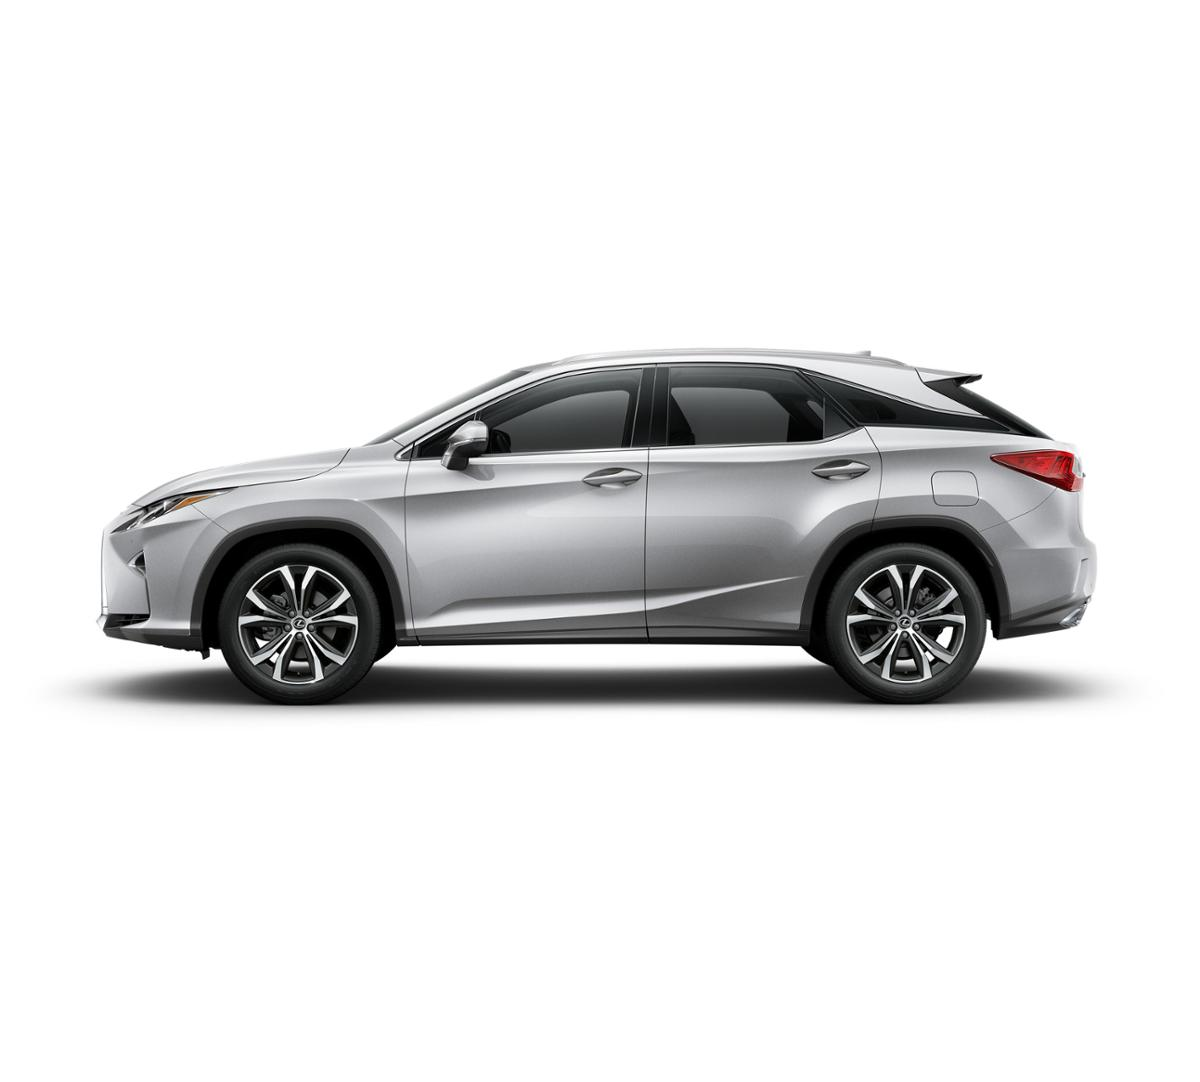 Lexus Sales: New 2019 Lexus RX 350 At New Country Lexus Of Latham, Your